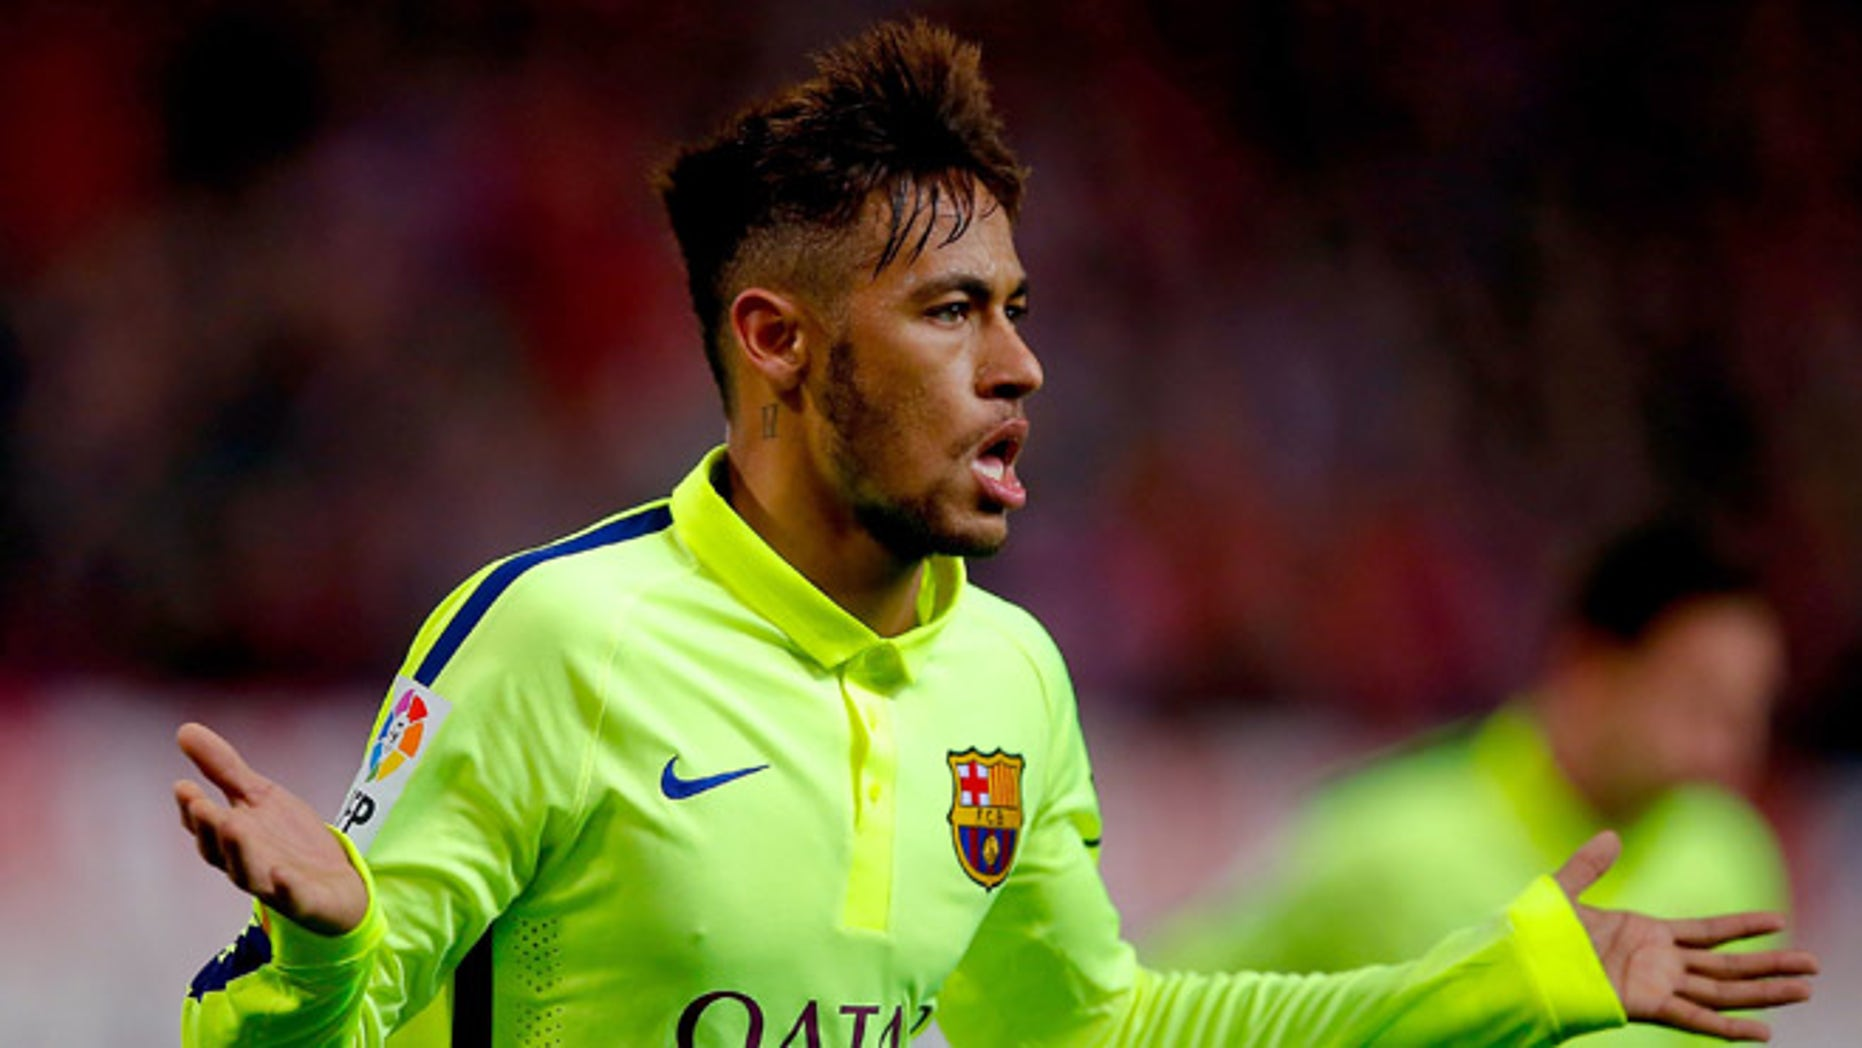 MADRID, SPAIN - JANUARY 28:  Neymar JR. of FC Barcelona celebrates scoring their third goal during the Copa del Rey Round of 8 second leg match between Club Atletico de Madrid and FC Barcelona at Vicente Calderon Stadium on January 28, 2015 in Madrid, Spain.  (Photo by Gonzalo Arroyo Moreno/Getty Images)